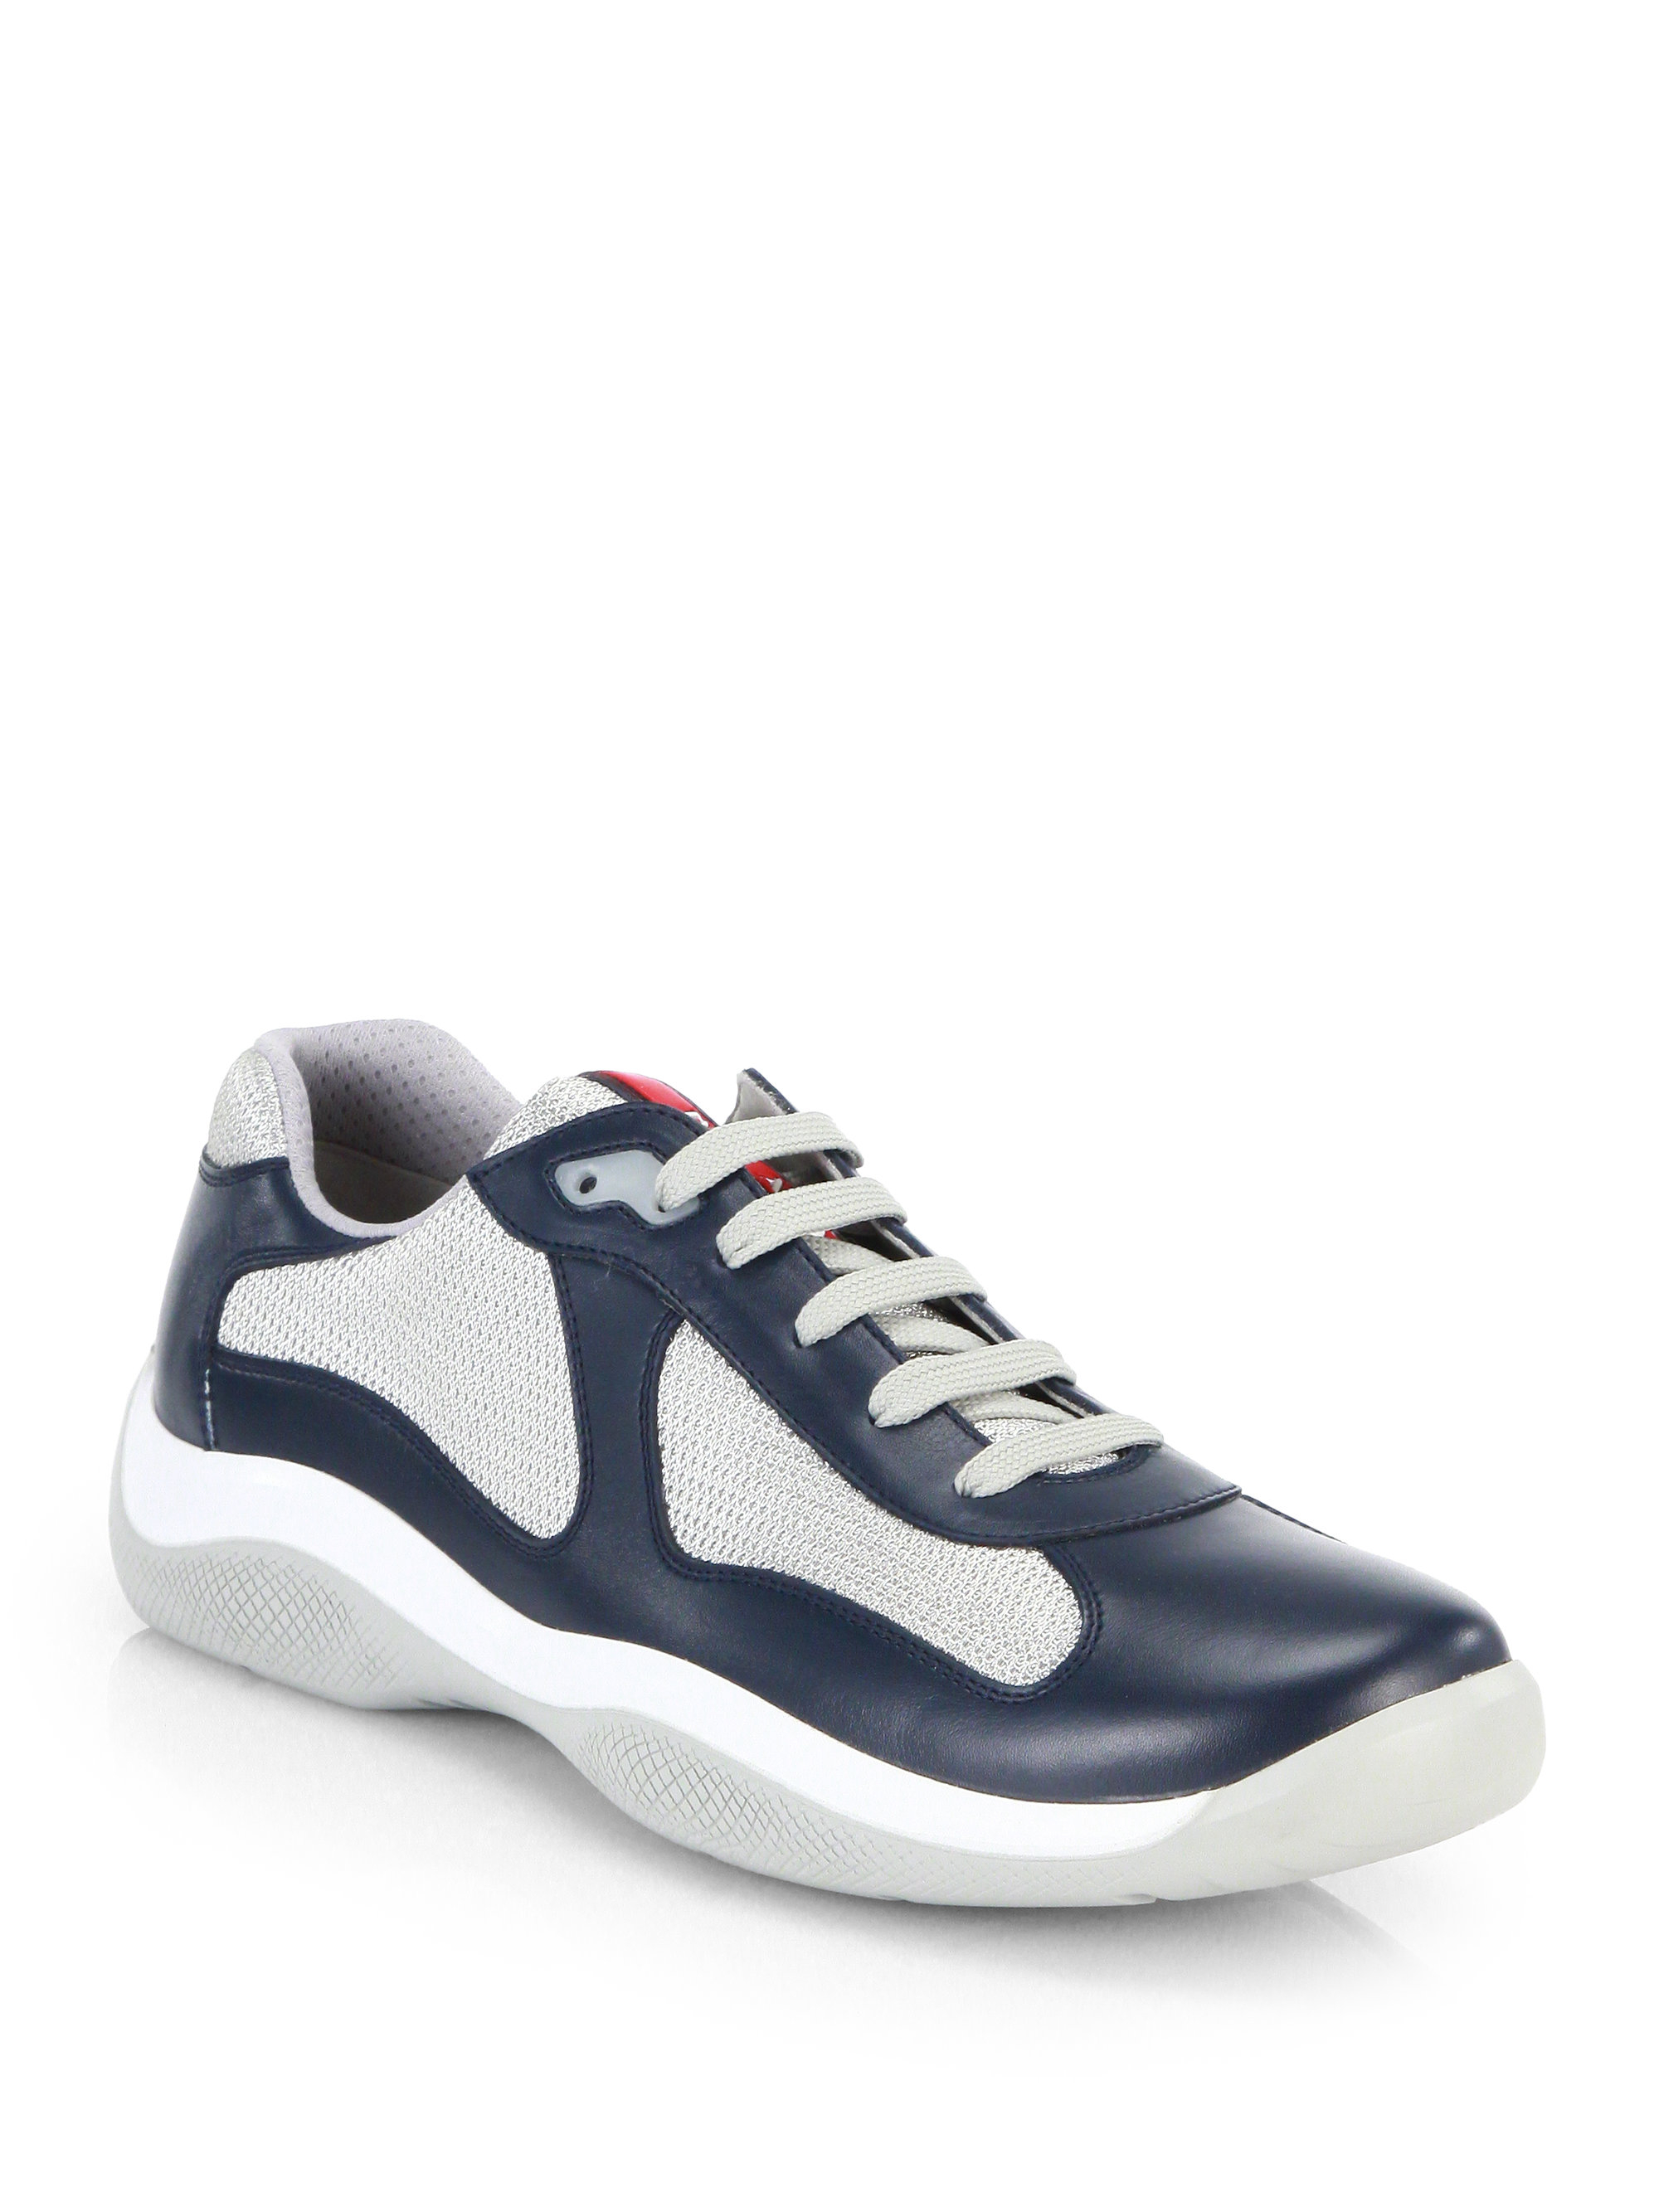 Men Prada Shoe Sneakers 53